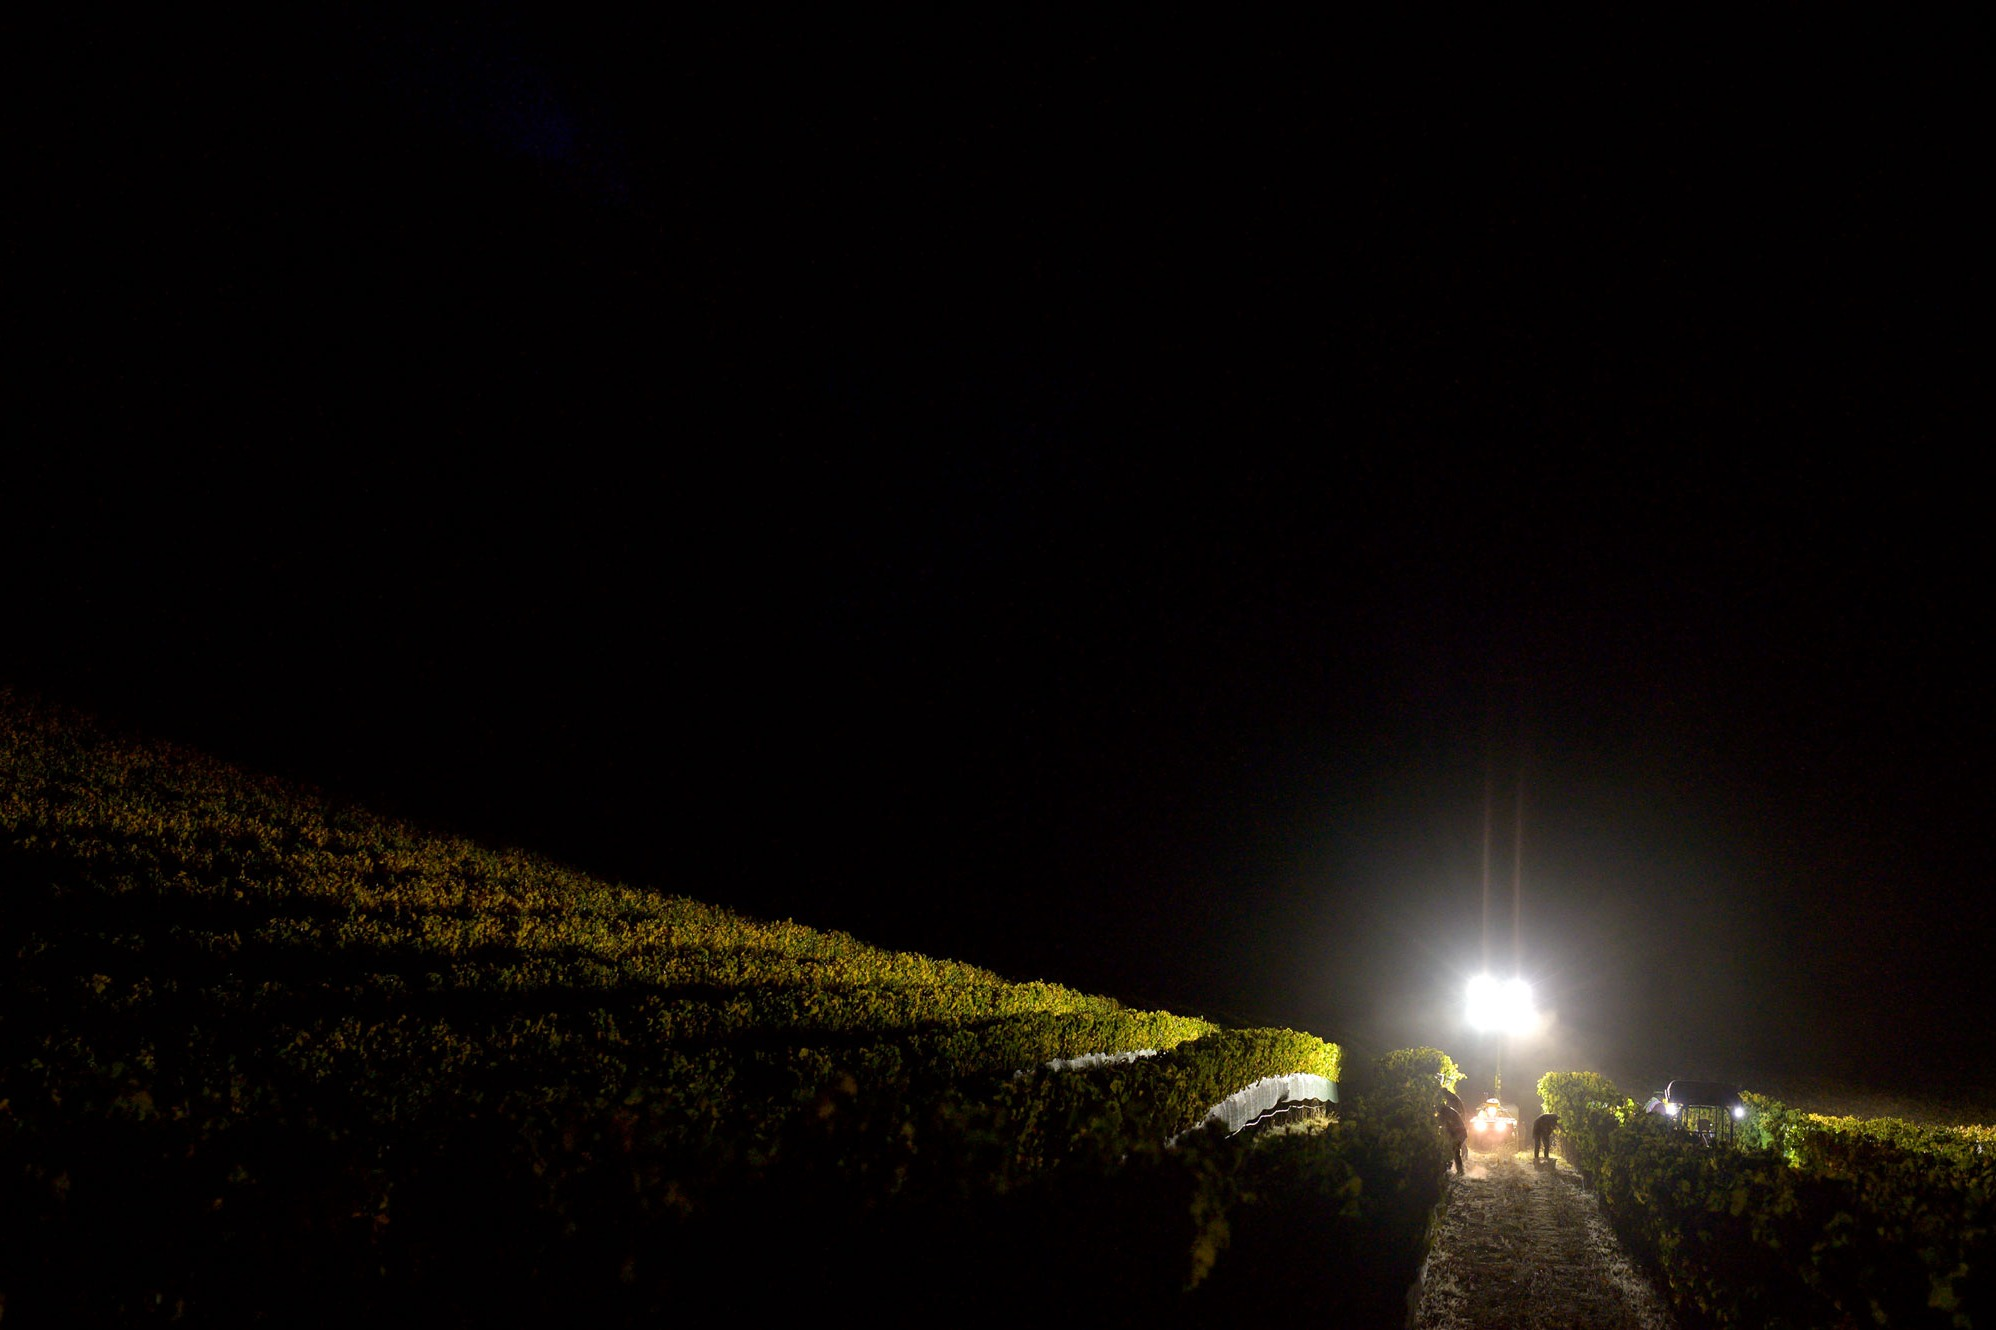 Tractor lights and headlamps illuminate night harvest at Ecotone Vineyard. Photo by JH Hayes